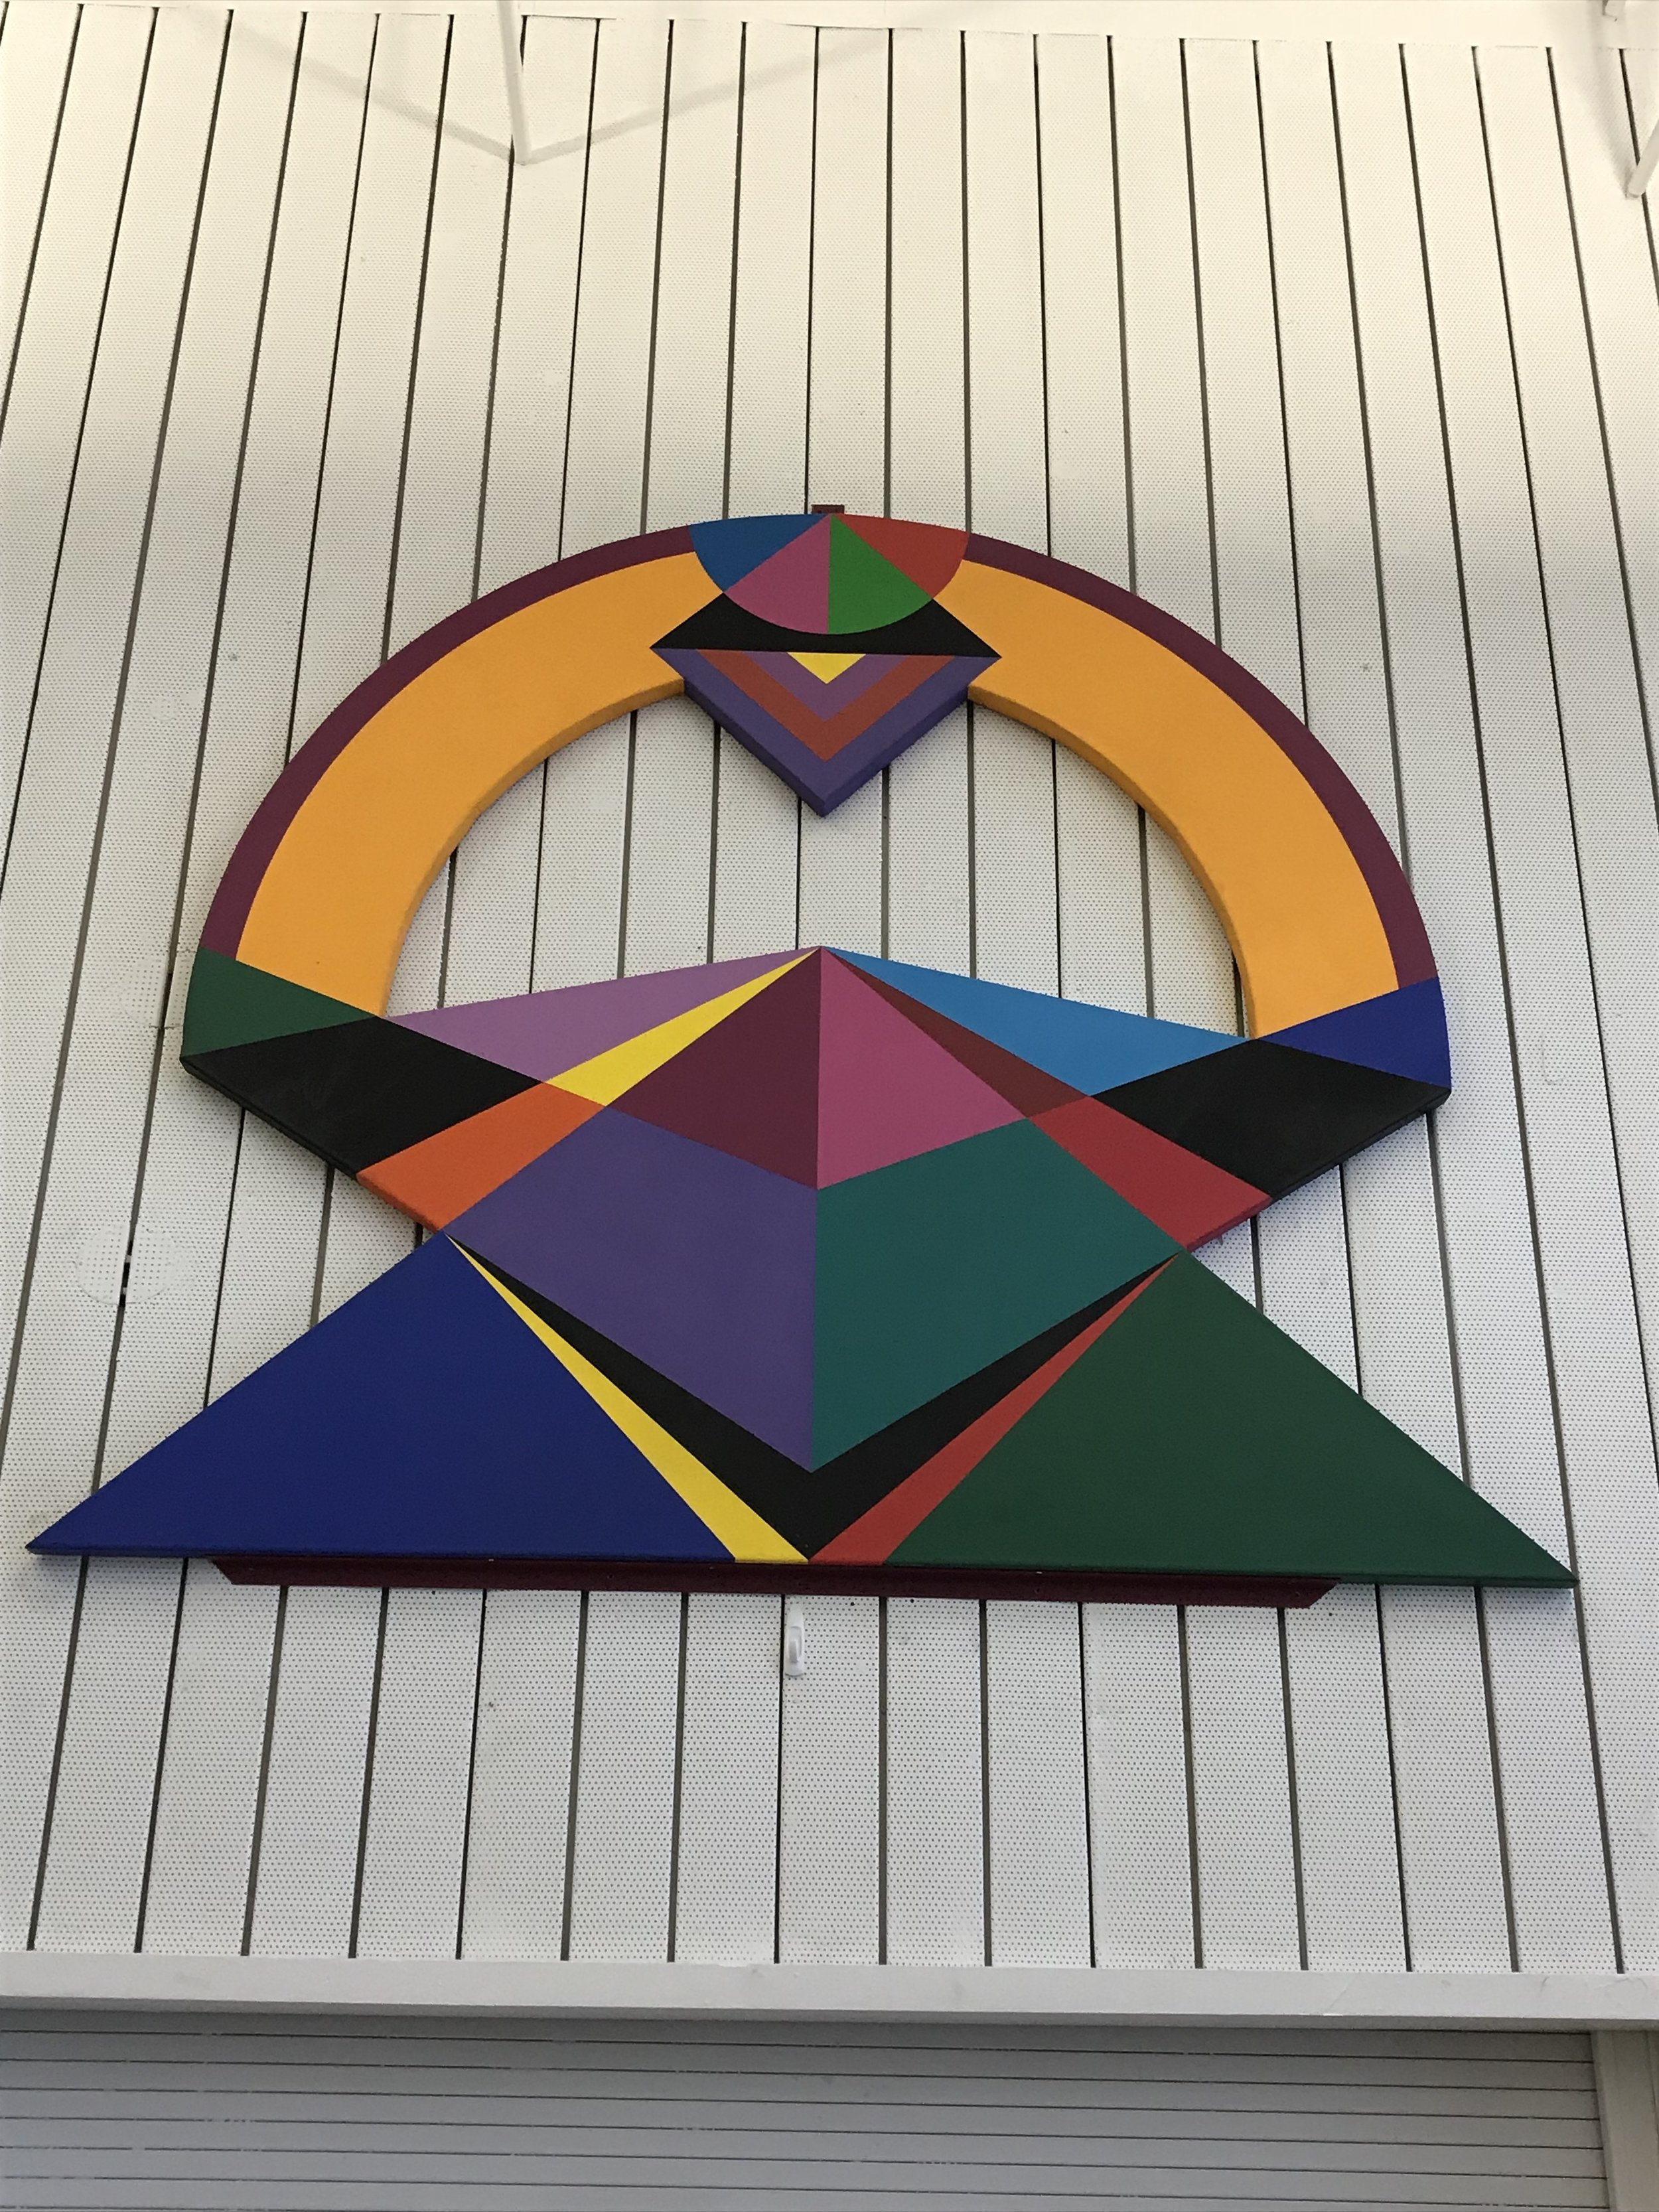 """While they waited for their tour, Cardinals 2 and the Hawks examined this piece together with parent volunteer and art educator, Jodi Kushins. They came up with some meaningful interpretations of what at first appeared to be just a colorful collection of geometric shapes. We learned later the piece is called, """"Giza"""" which fit some of our ideas more easily than others."""